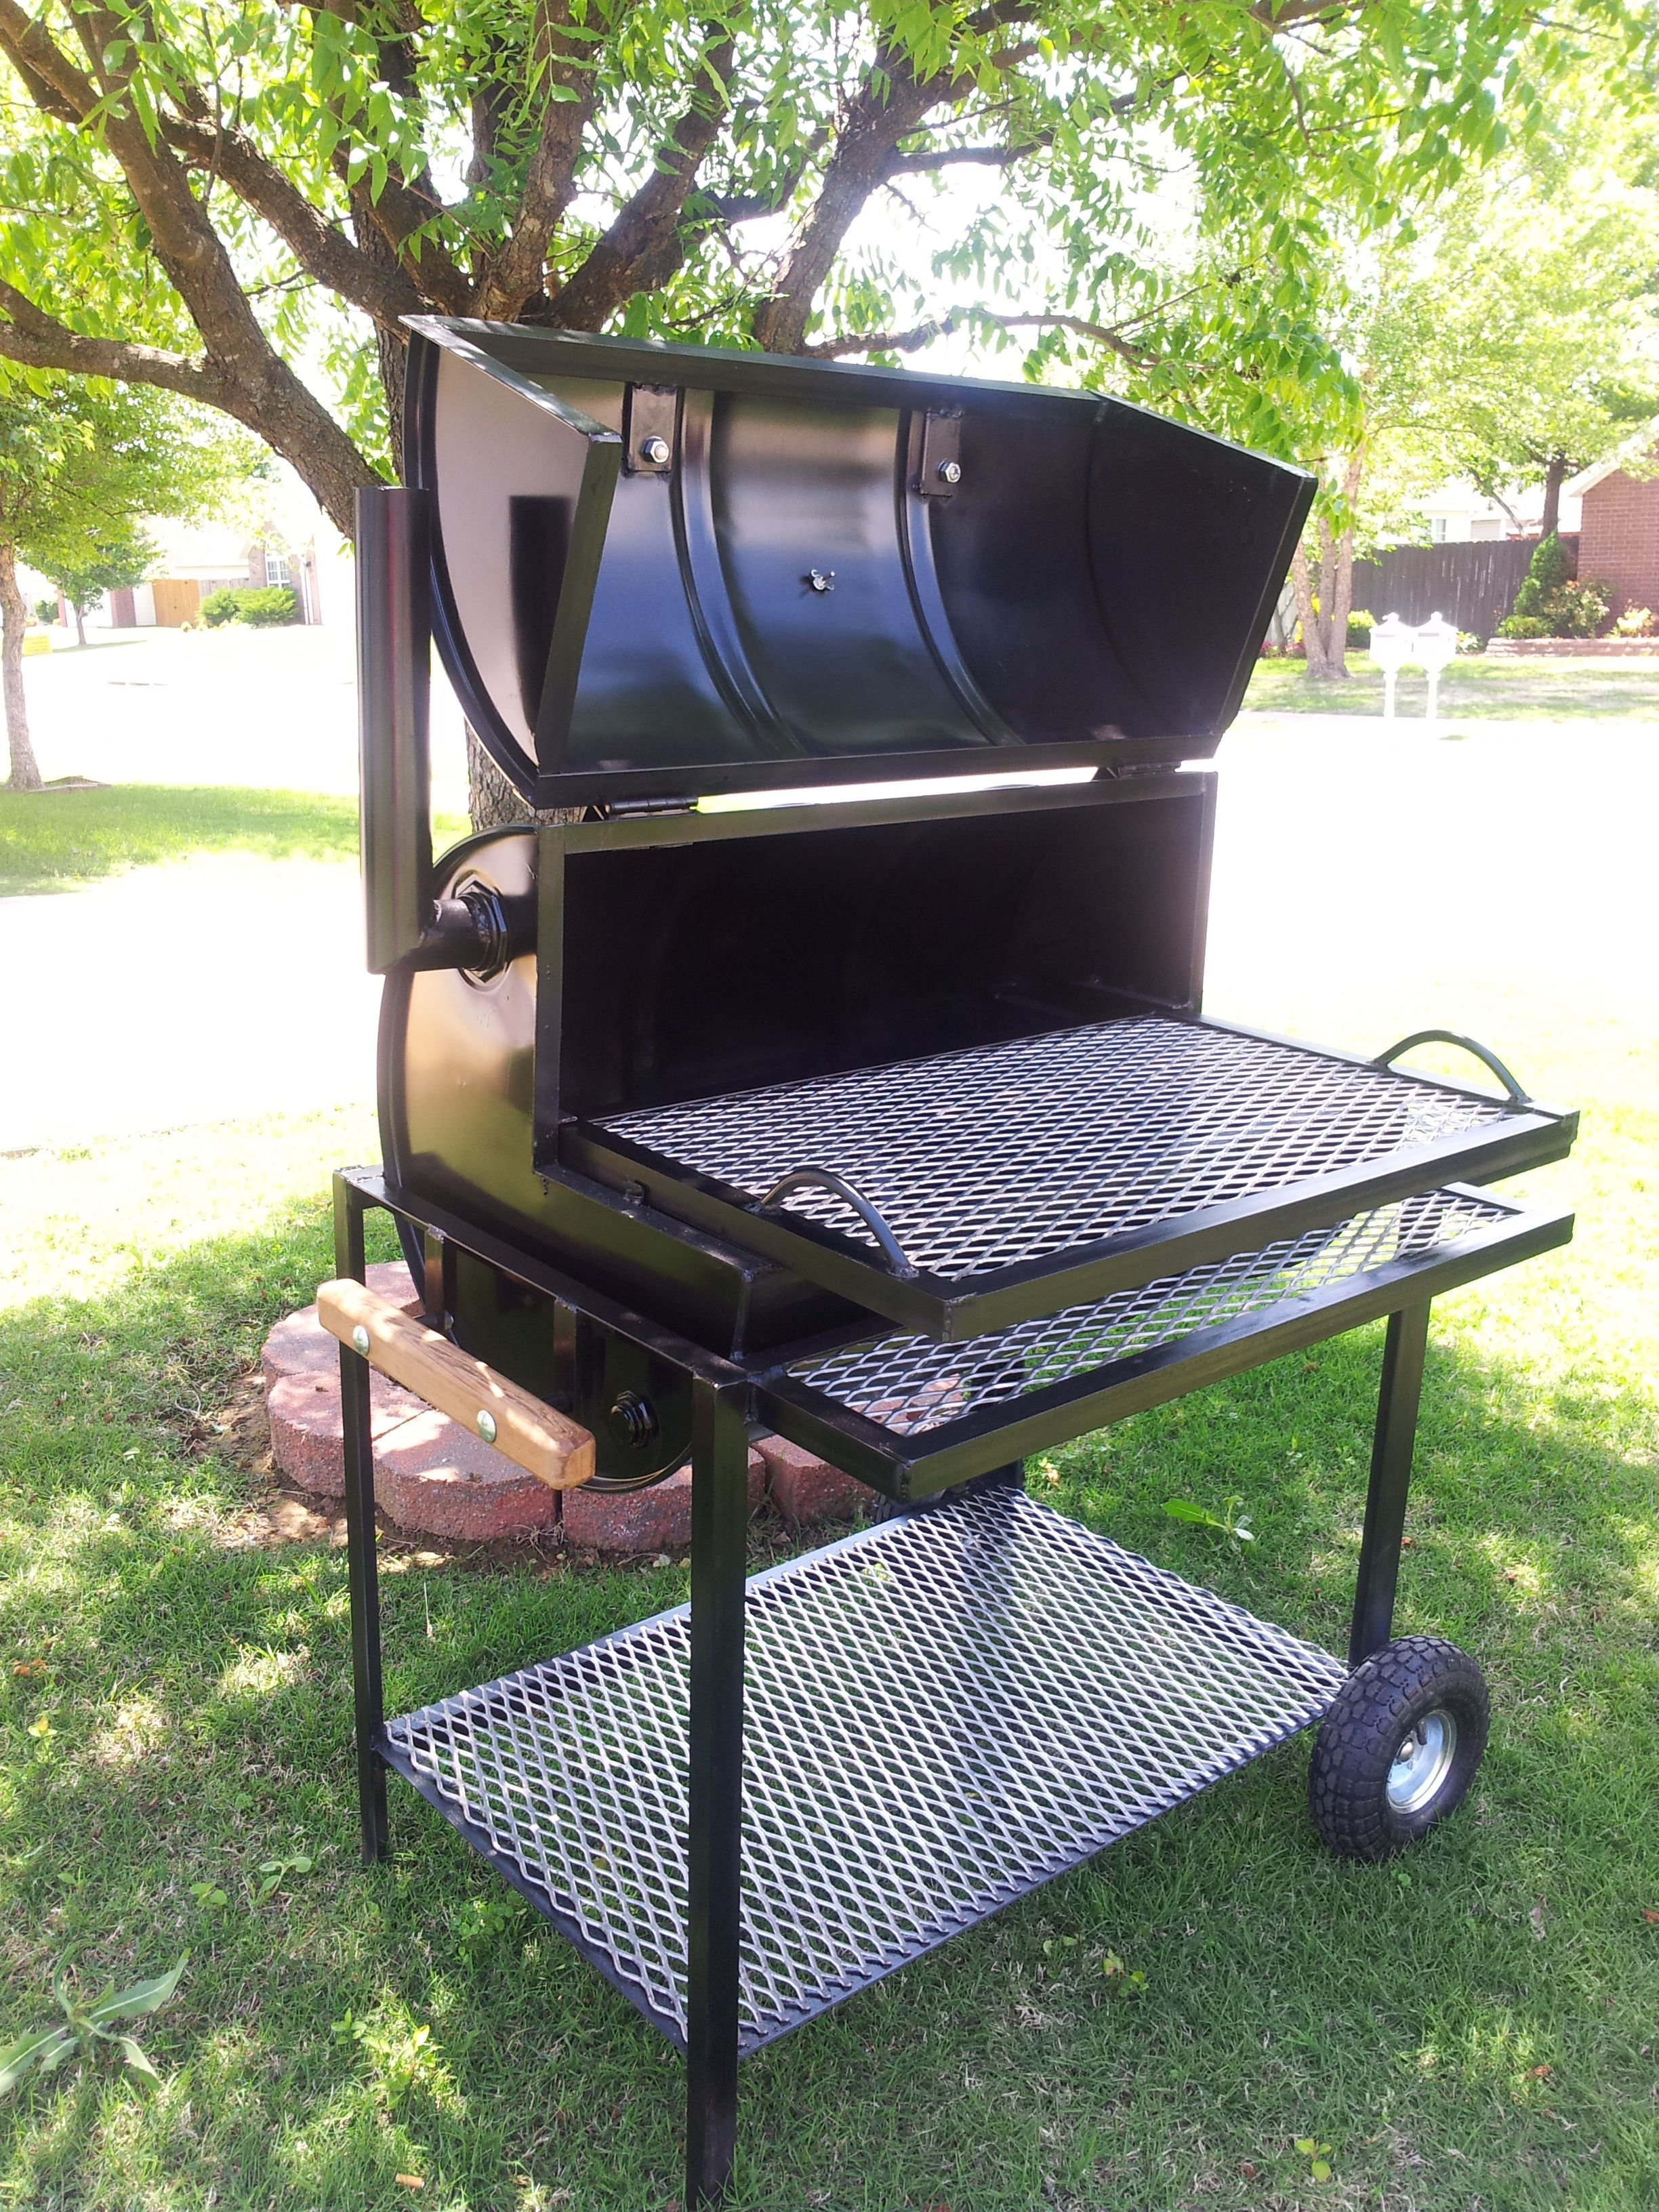 Hand made custom barrel bbq grill made to spec give us a